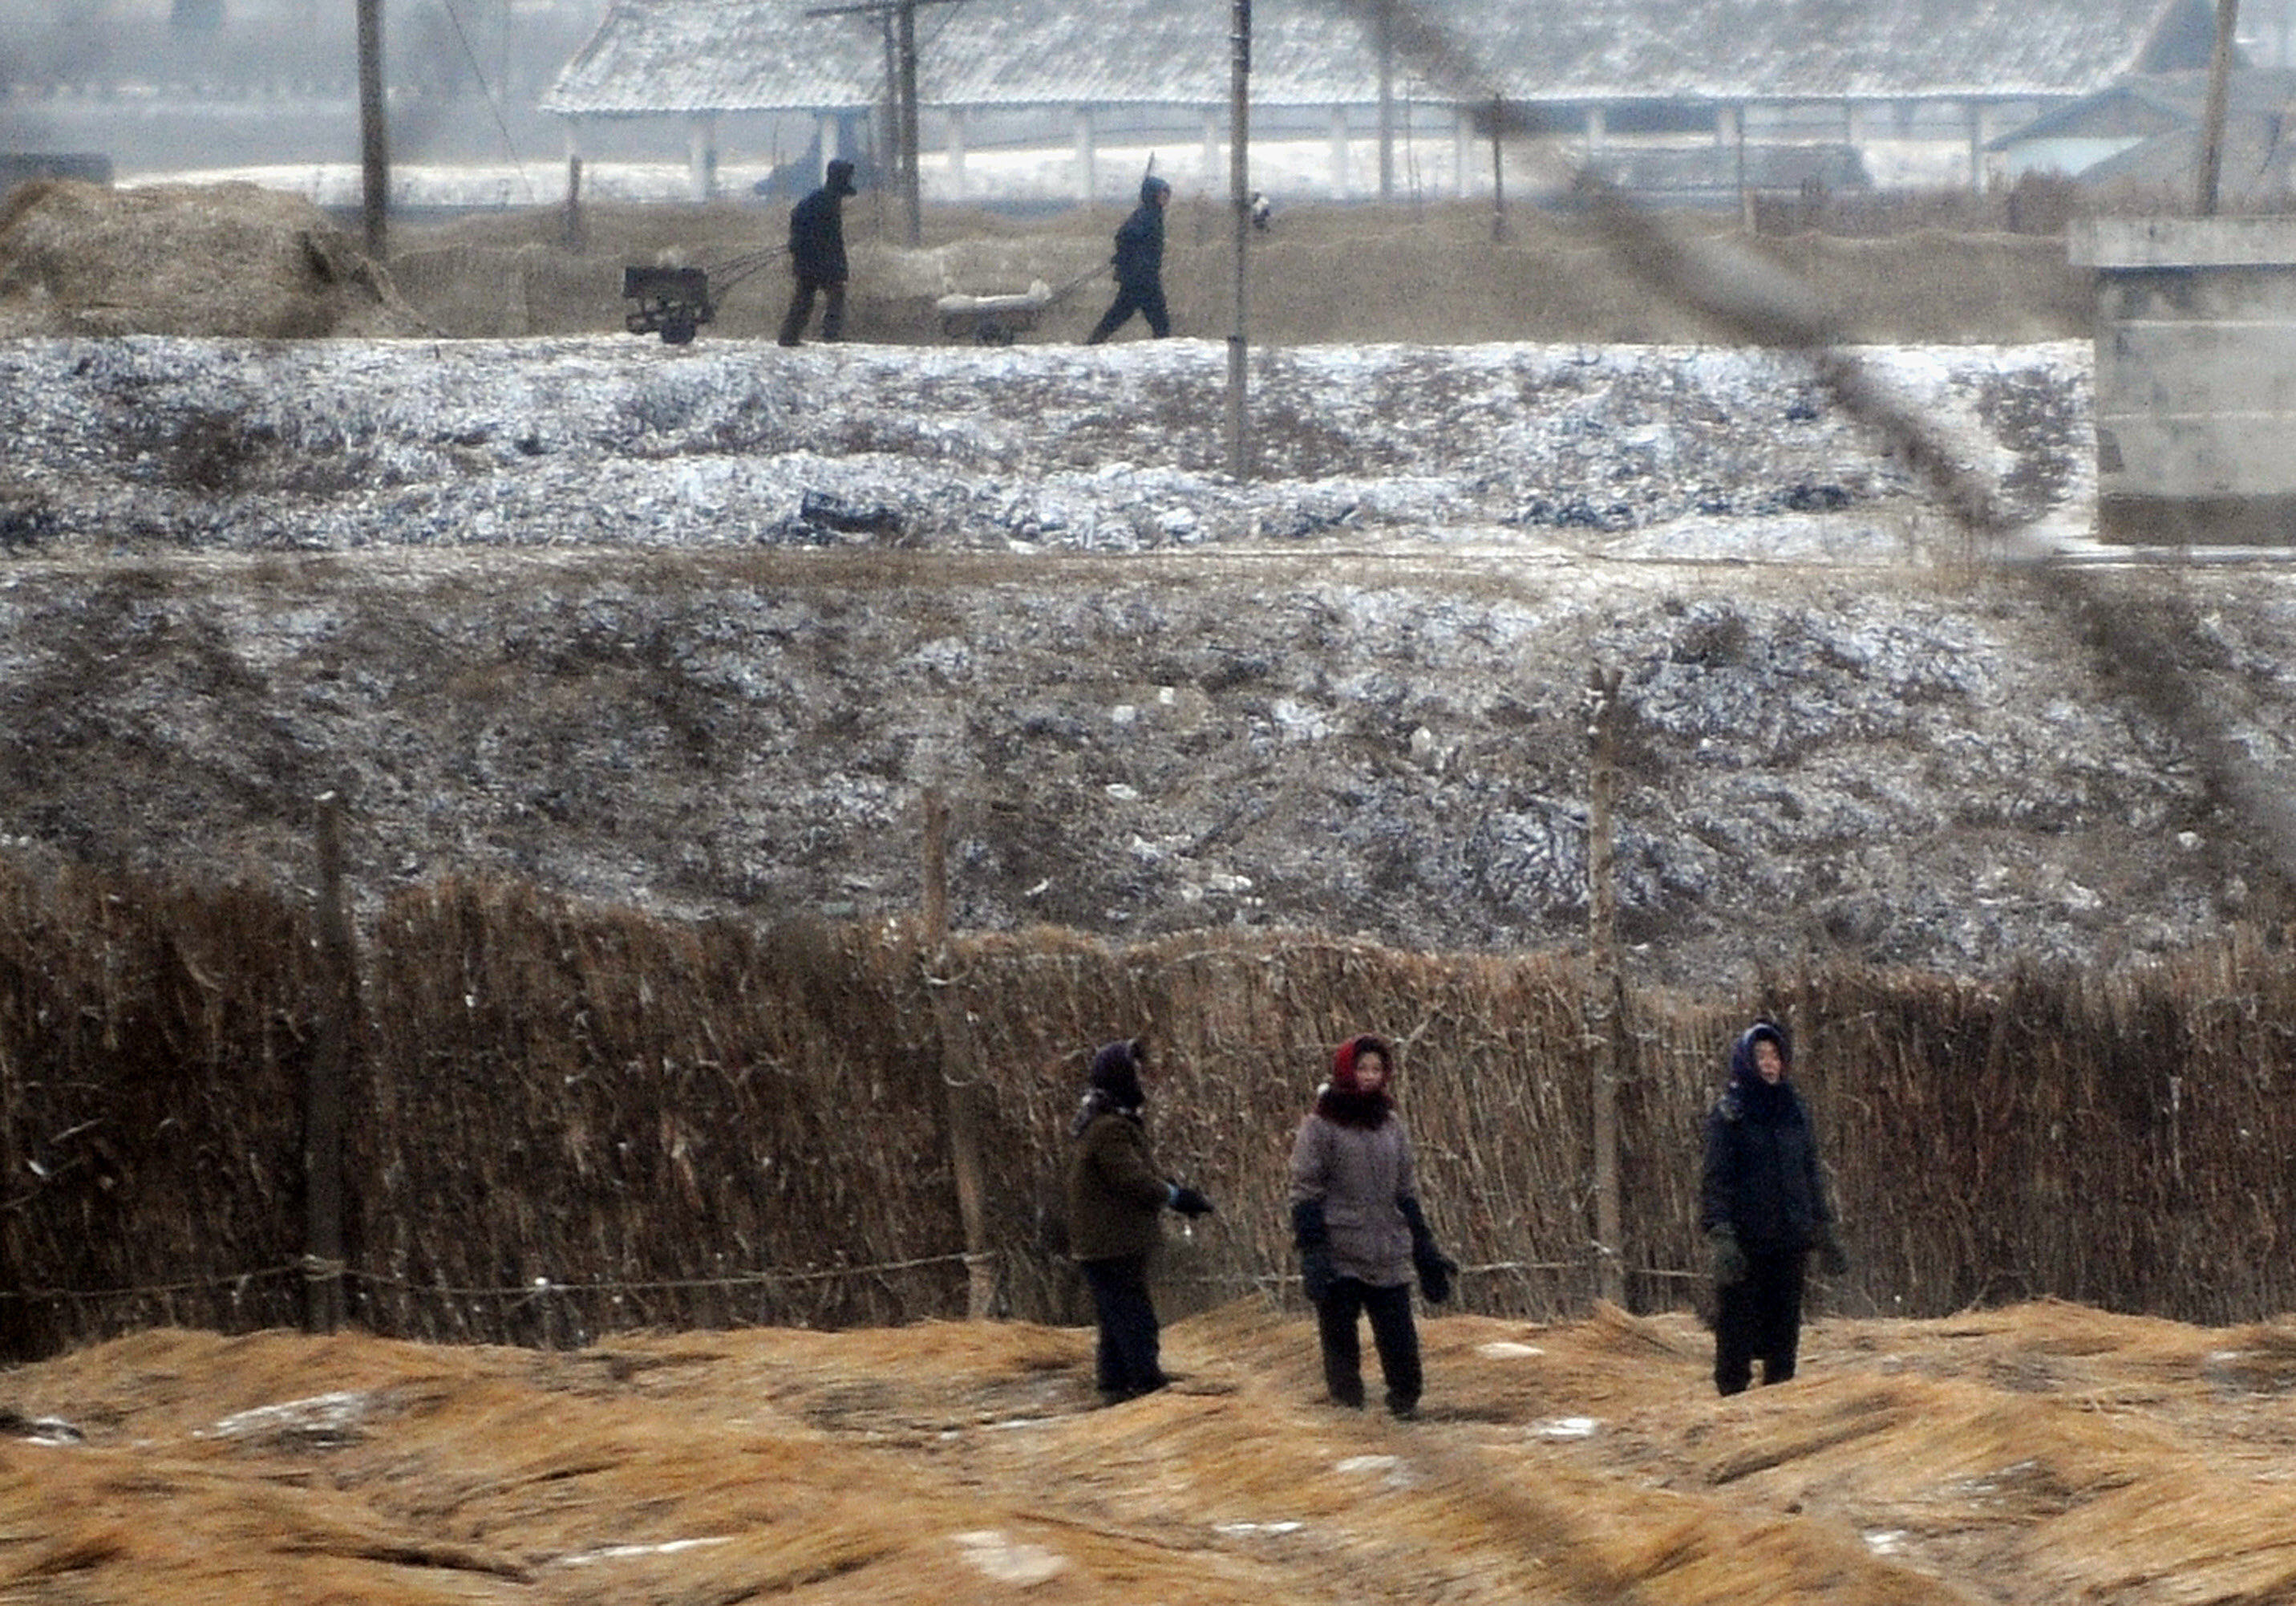 North Korean farmers work in their fields outside the capital Pyongyang in 2008. A famine in the mid-1990s killed up to 1 million North Koreans. Today, aid agencies warn that the country, ruled by one of the world's most repressive regimes, is on the verge of another dire food crisis. (Mark Ralston/Getty Images)